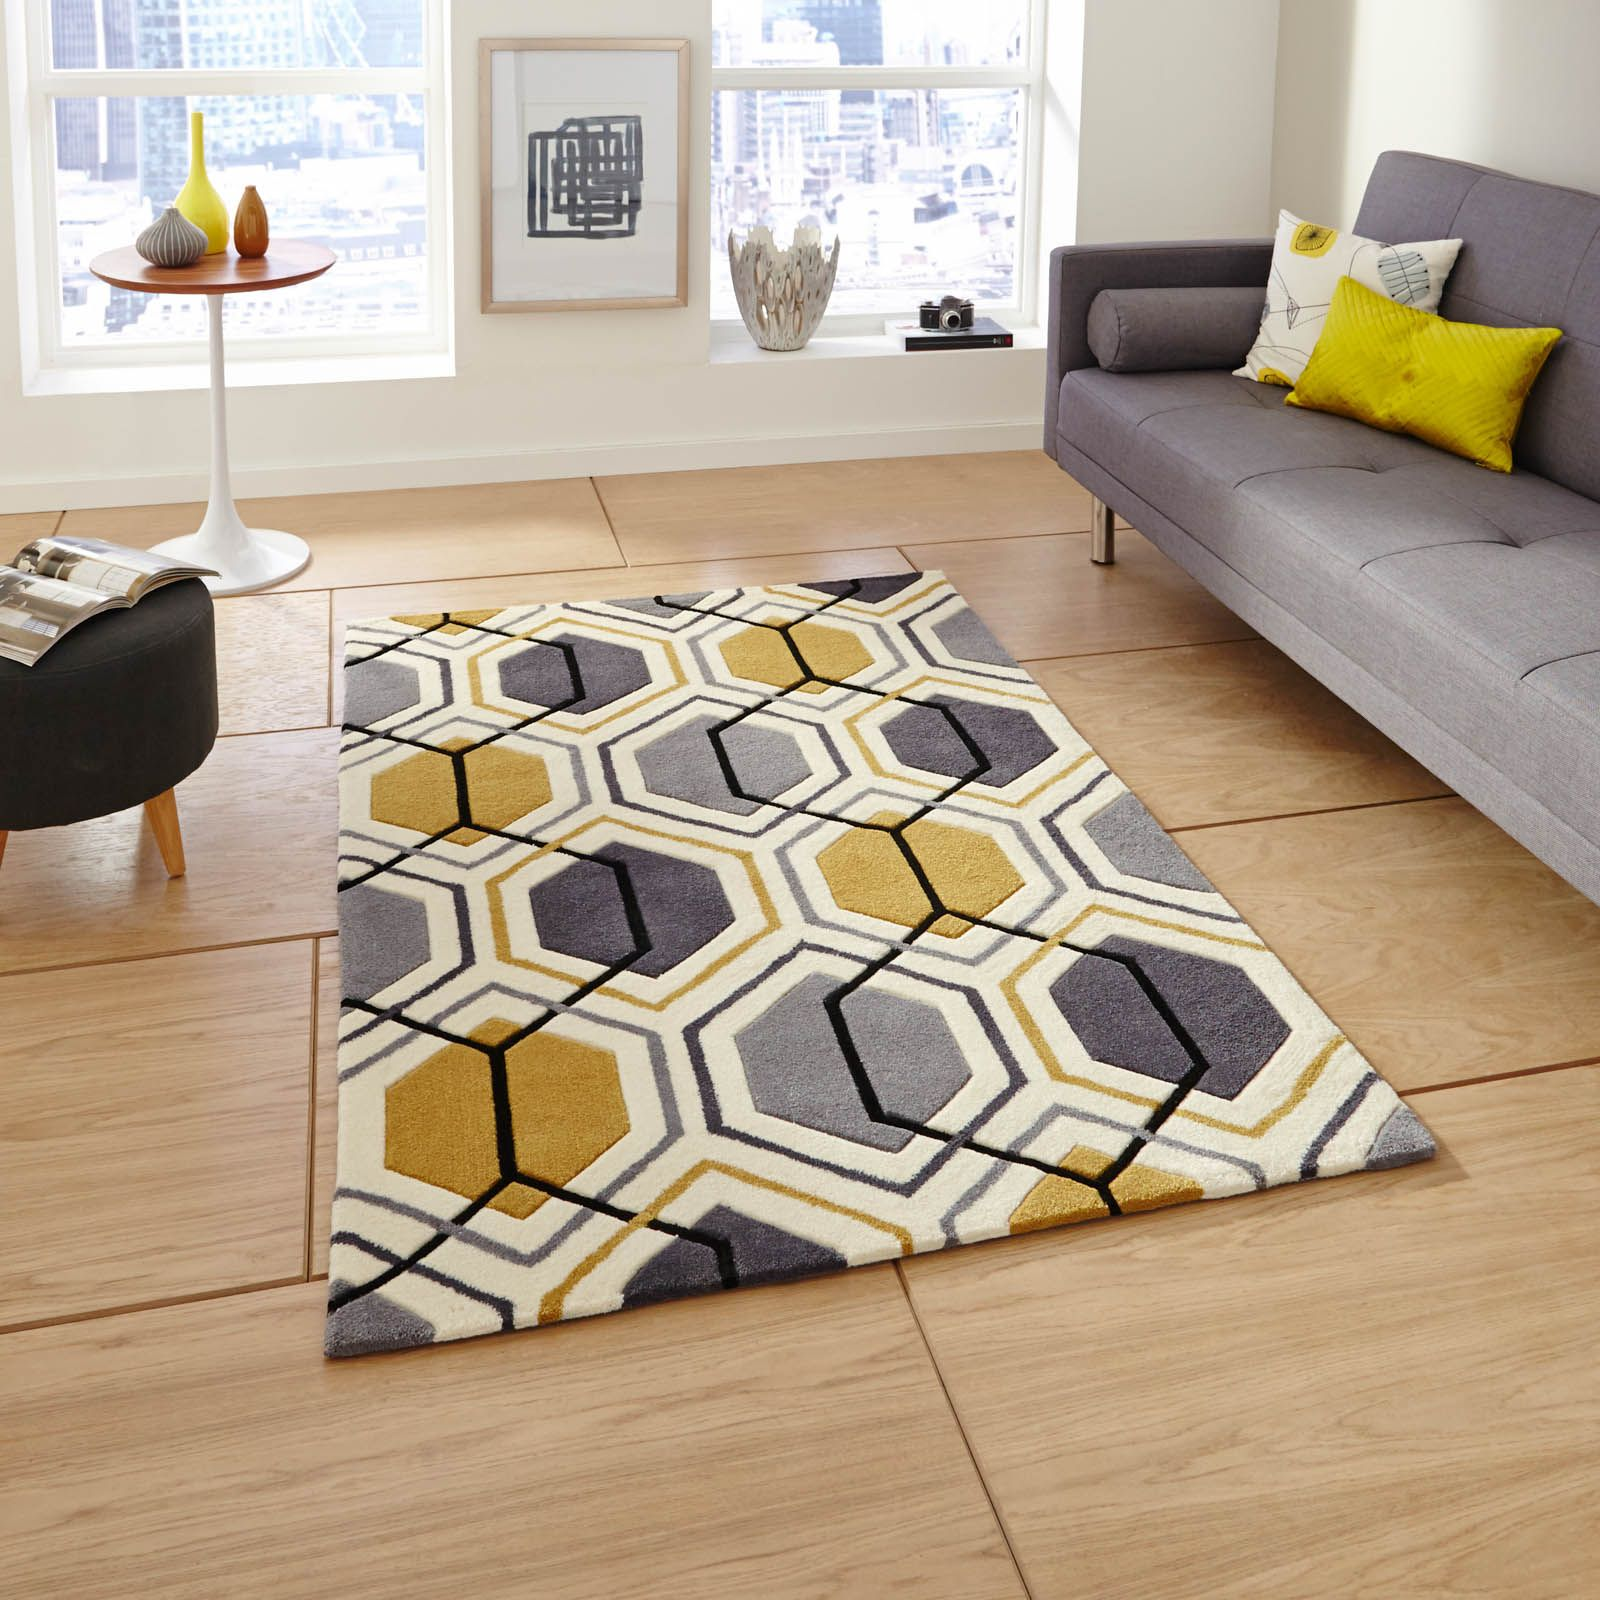 Hong Kong Hk 7526 Rugs In Grey Yellow Free Uk Delivery